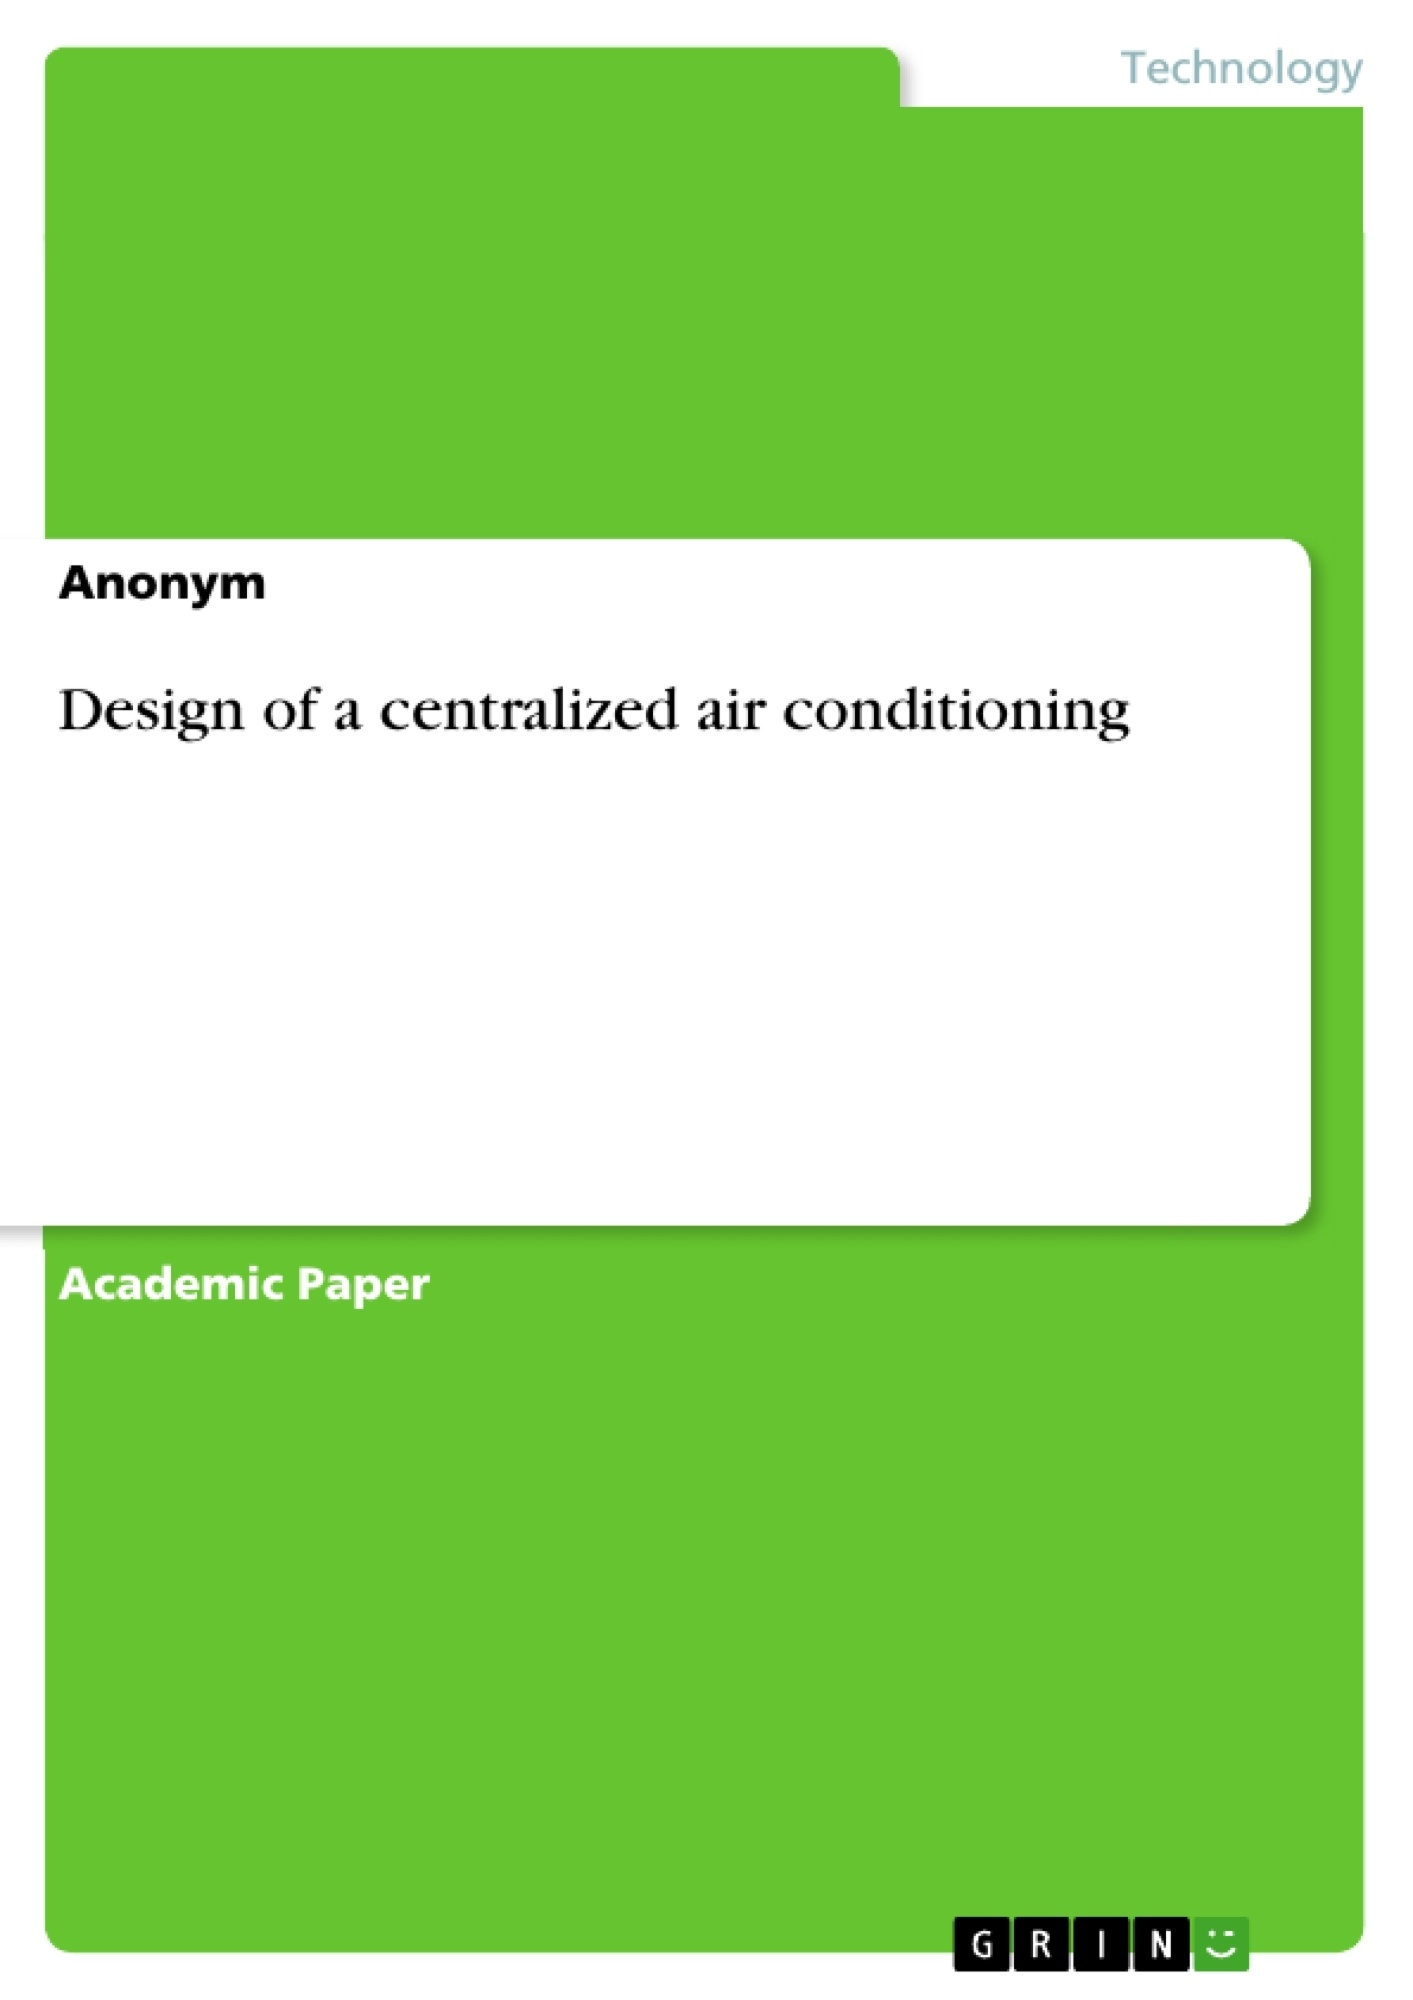 Title: Design of a centralized air conditioning